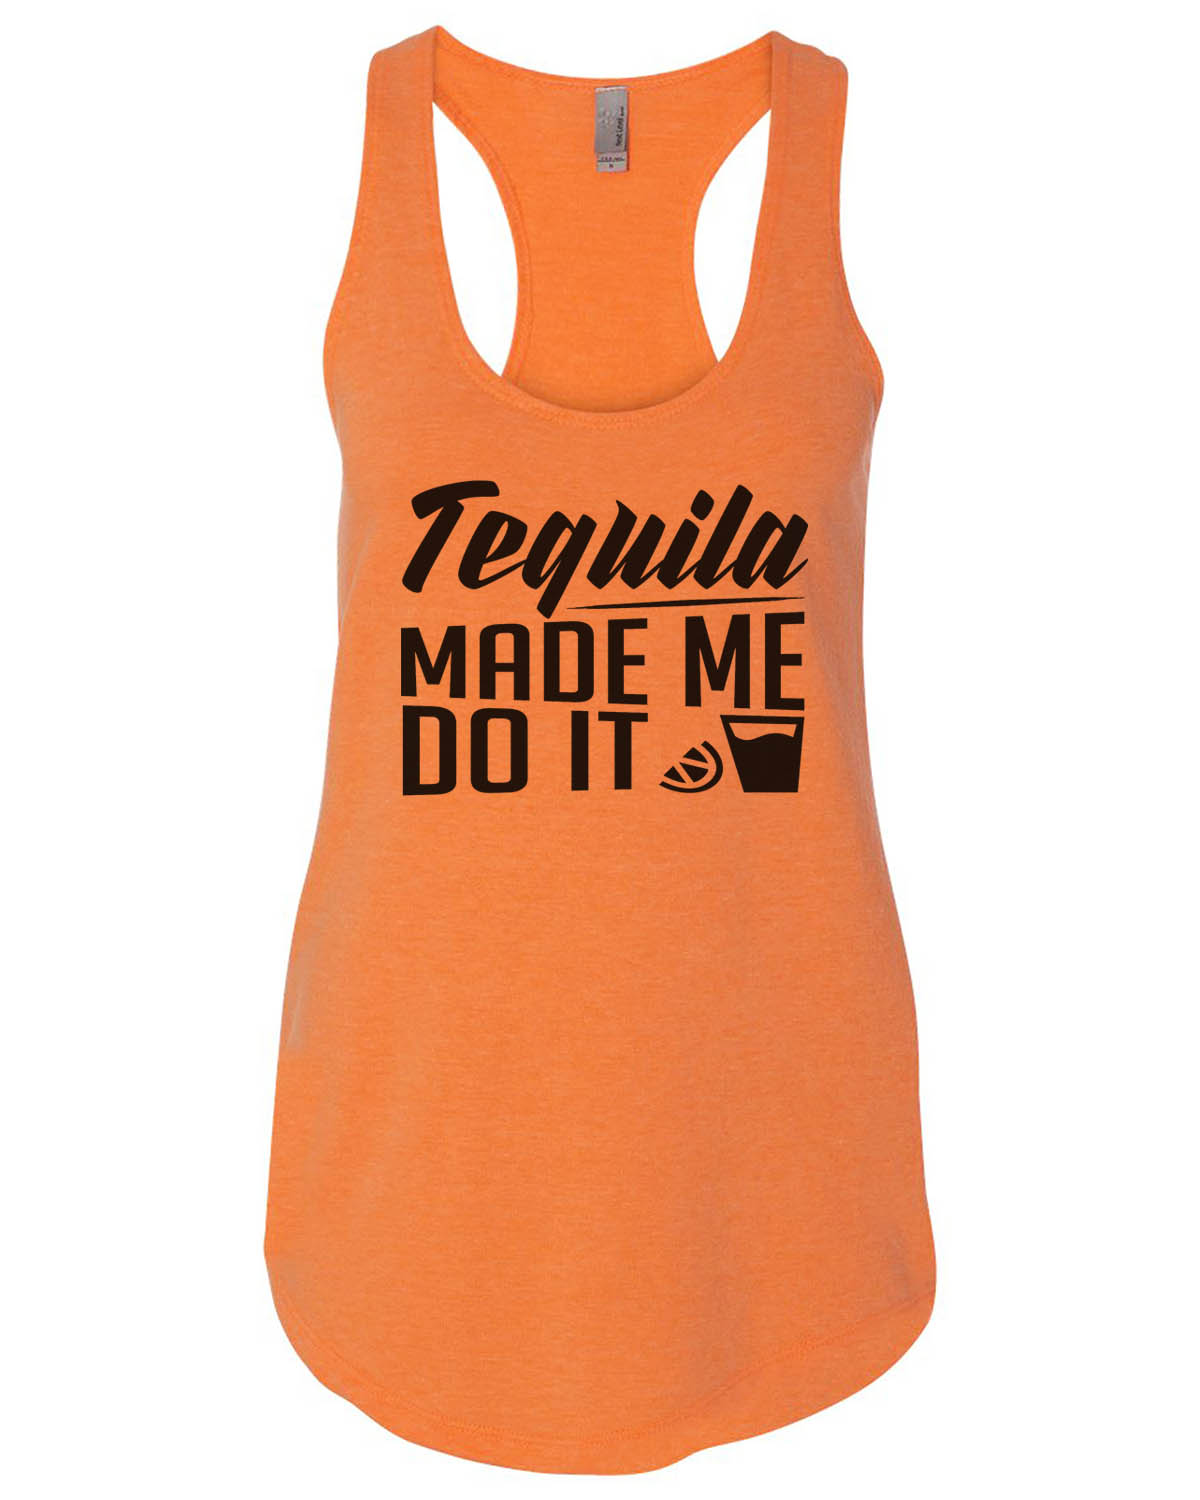 Get Me Drunk and Enjoy The Show Neon Tank Top